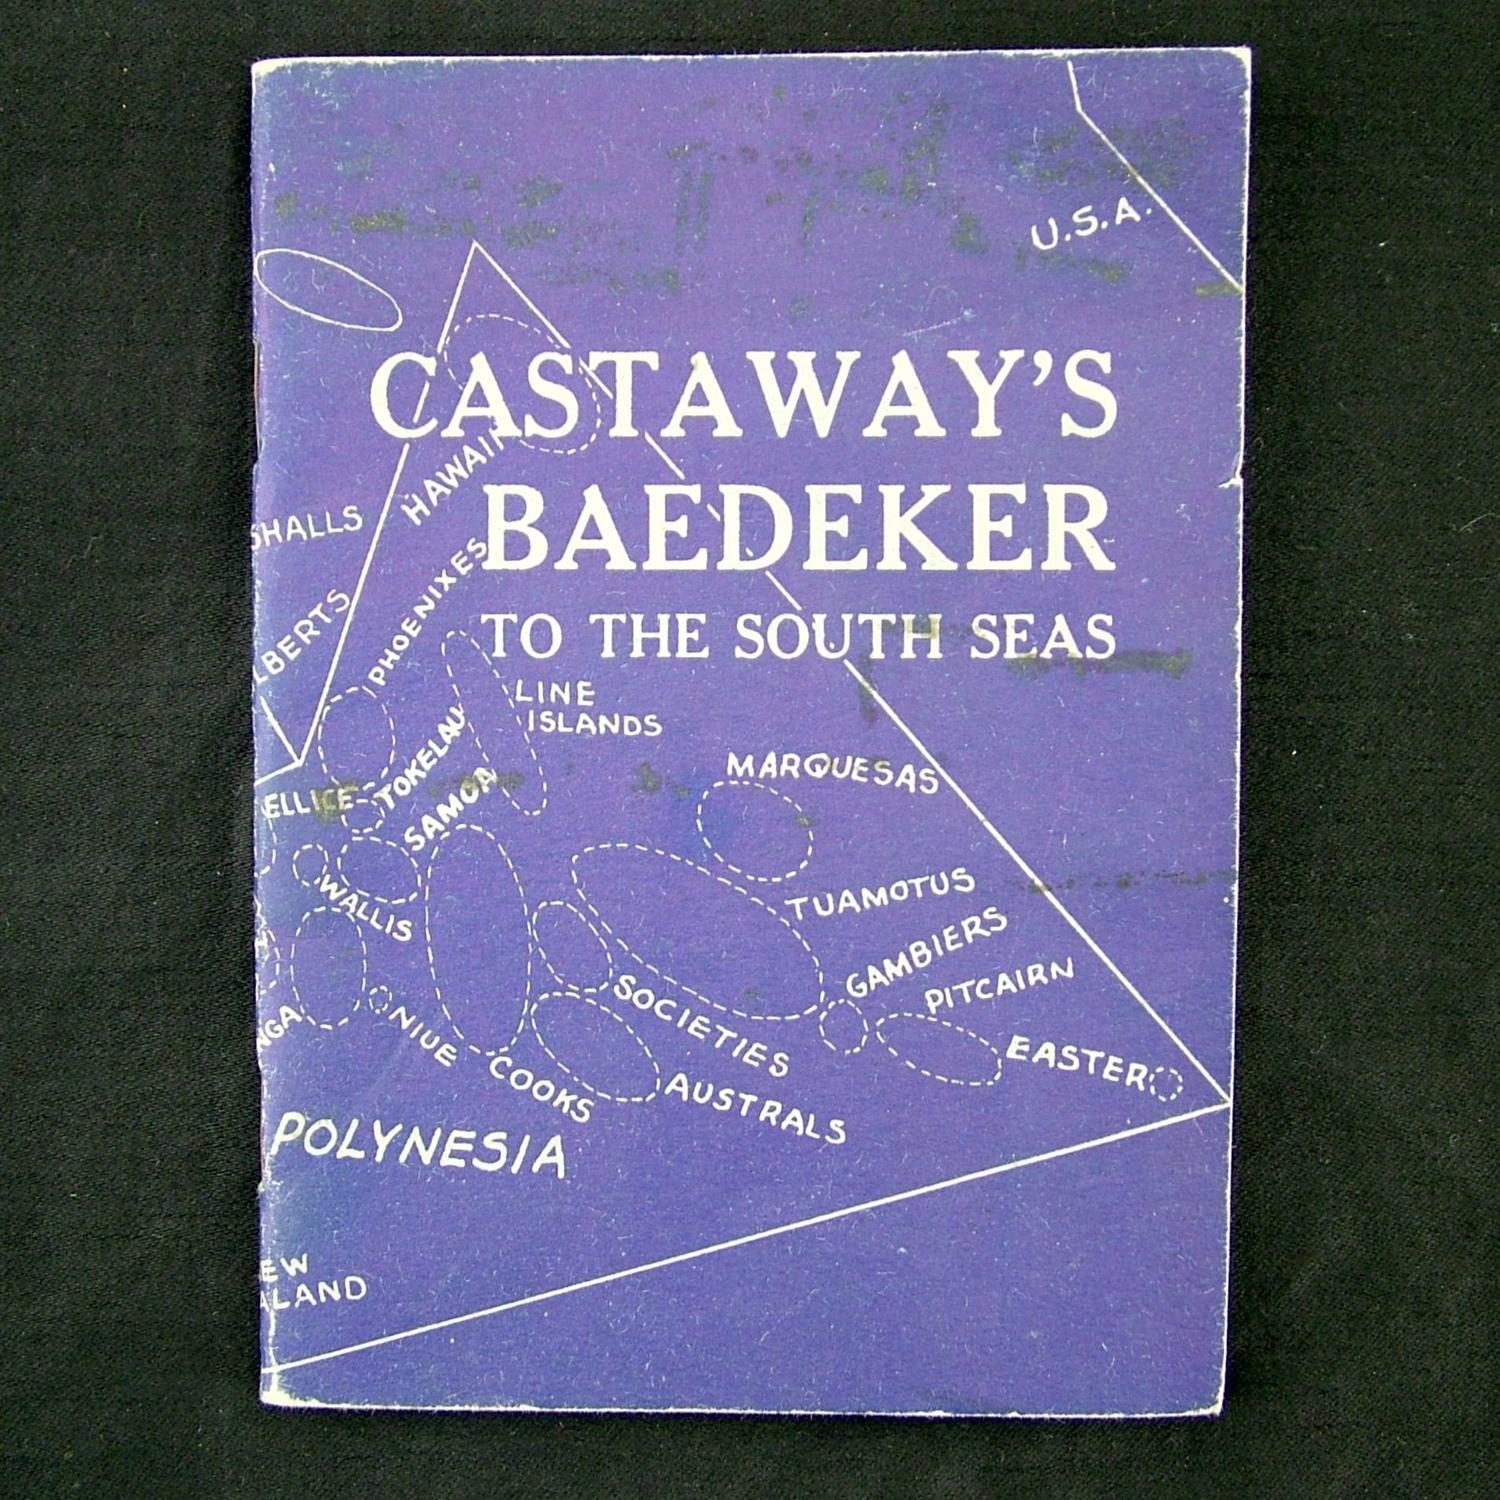 US Forces issued Castaway's Baedeker to the South Seas